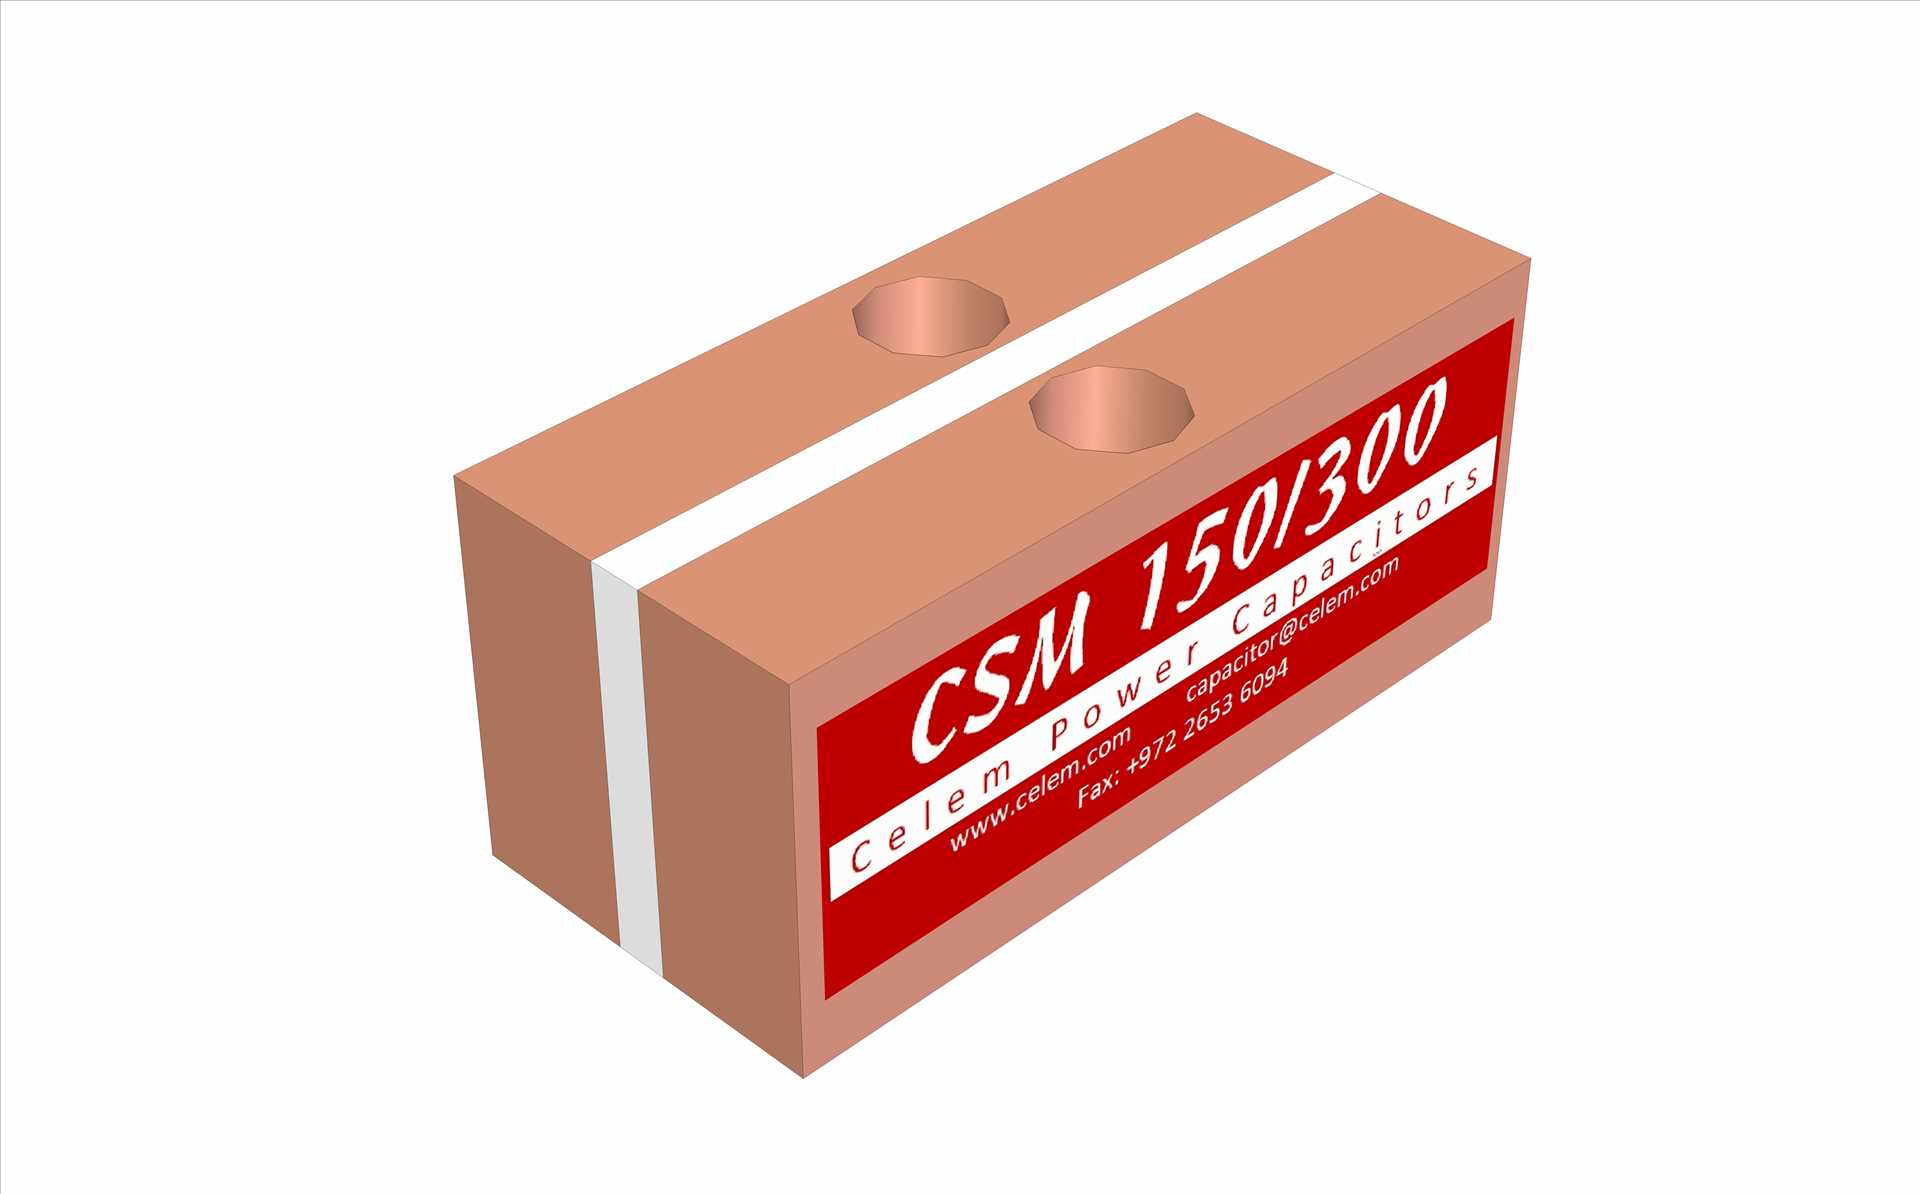 Conduction Cooled Capacitors